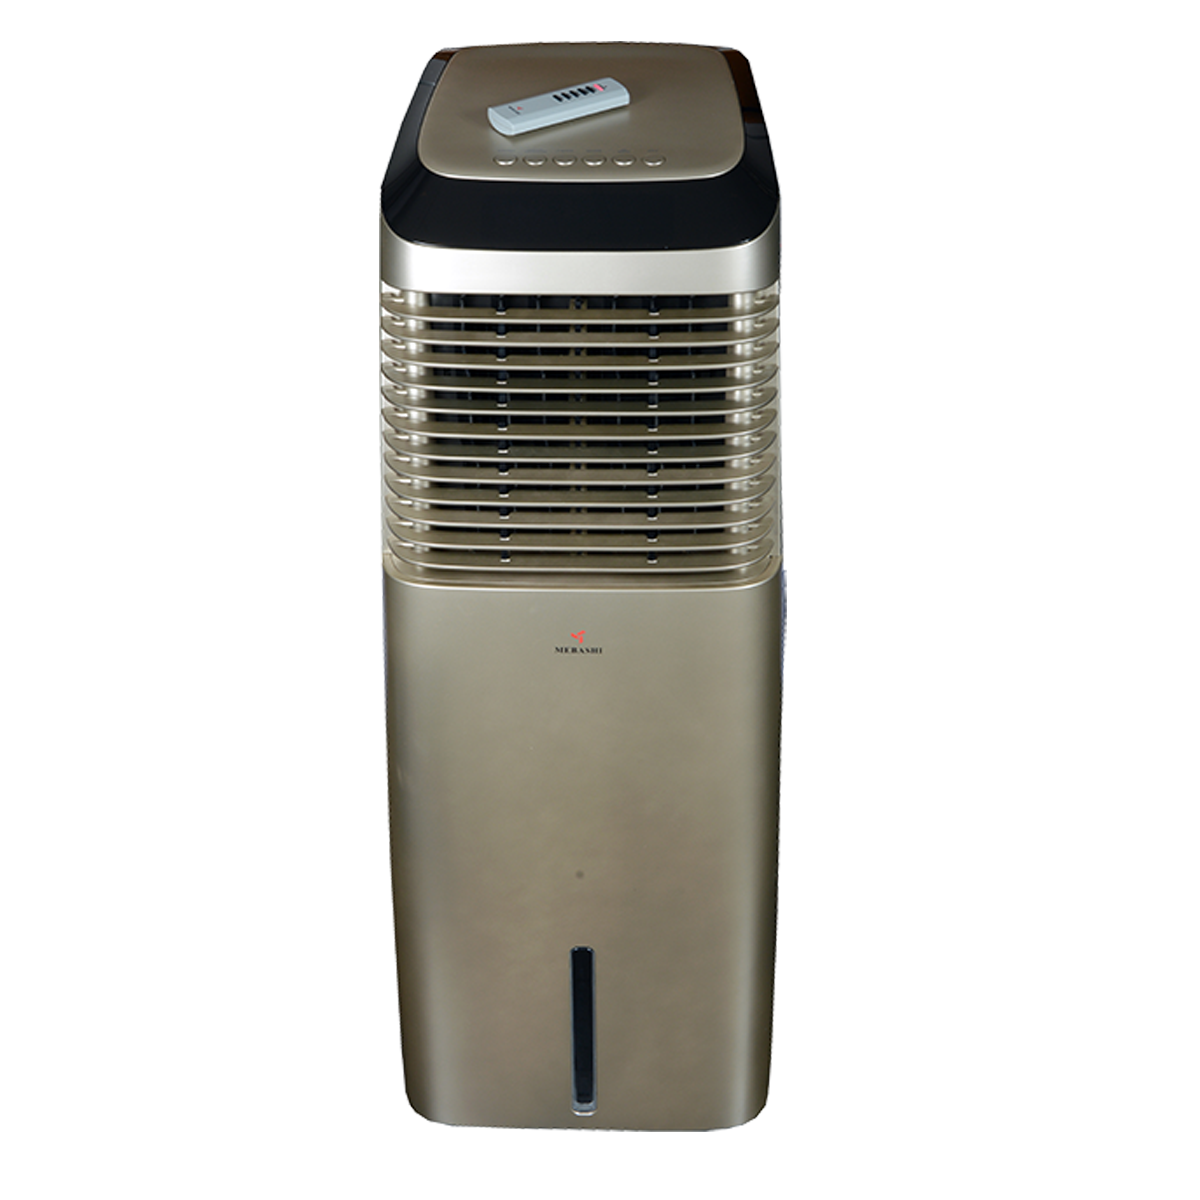 #546C77 Air Cooler Champagne Color ME: ACO1001 – Aumran Amir Ltd Brand New 771 Air Cooler Water images with 1200x1200 px on helpvideos.info - Air Conditioners, Air Coolers and more